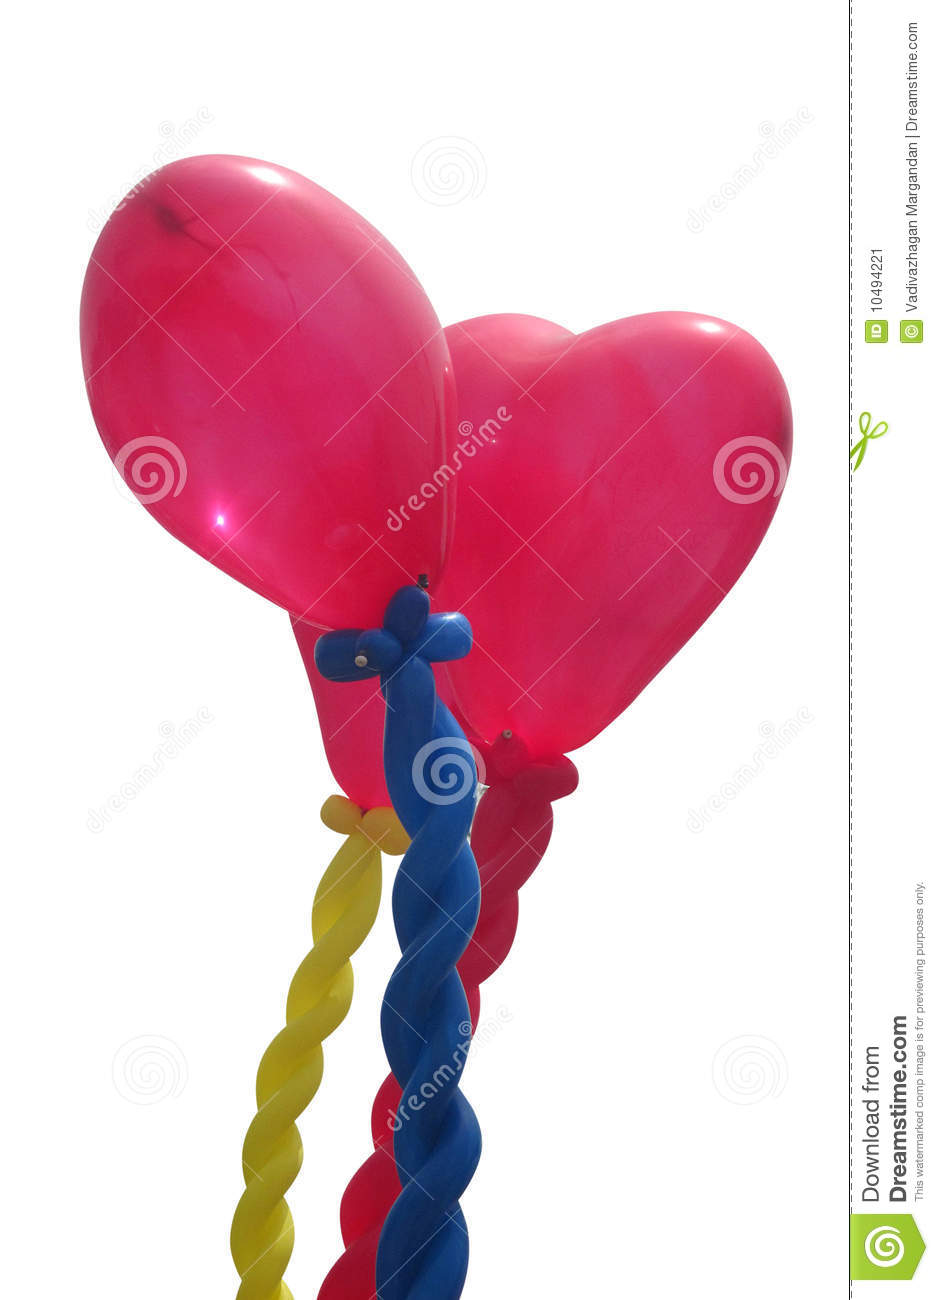 Balloons - path included